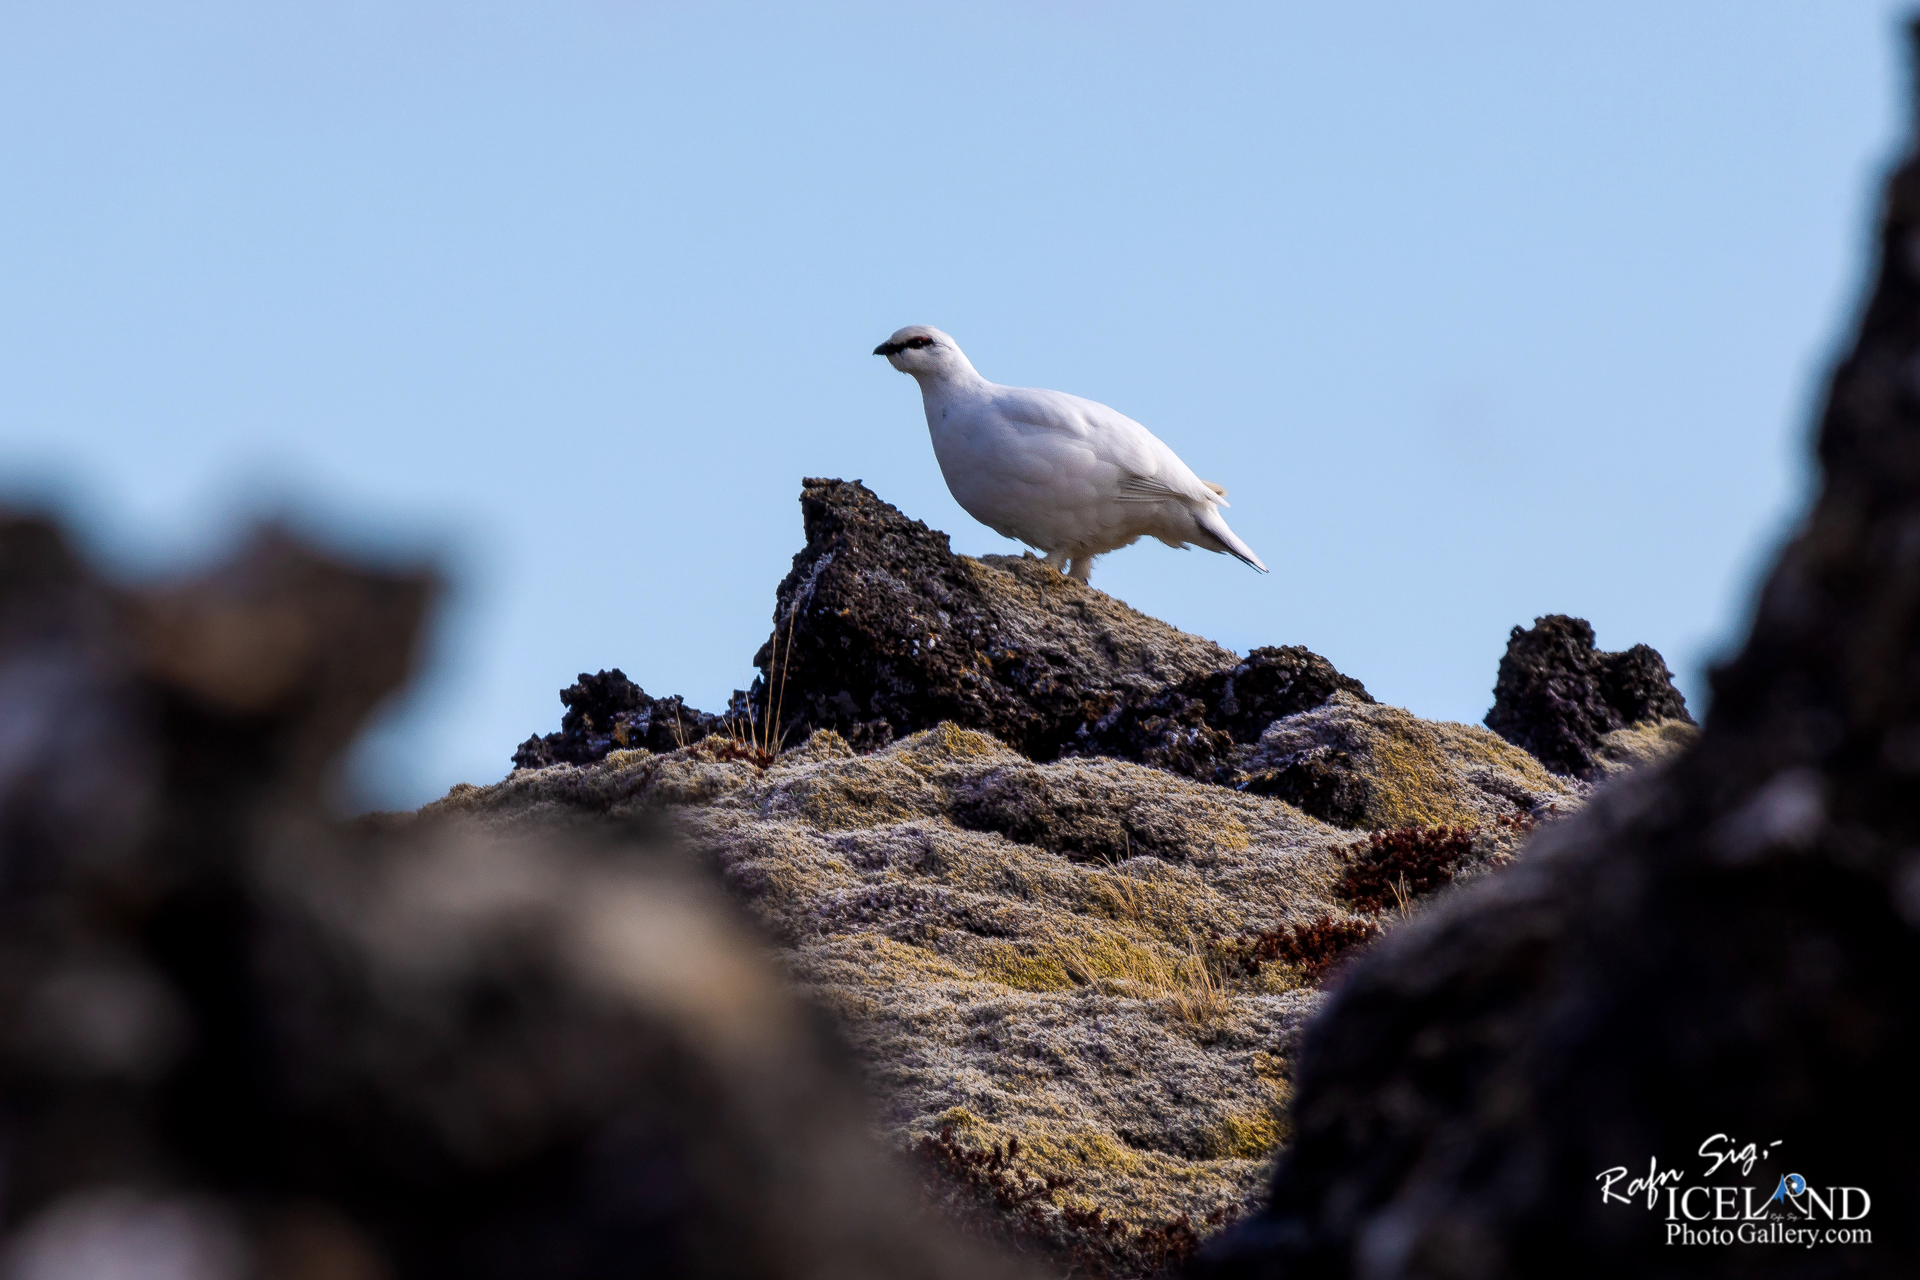 Rock ptarmigan on Lava stone│ Iceland nature photography